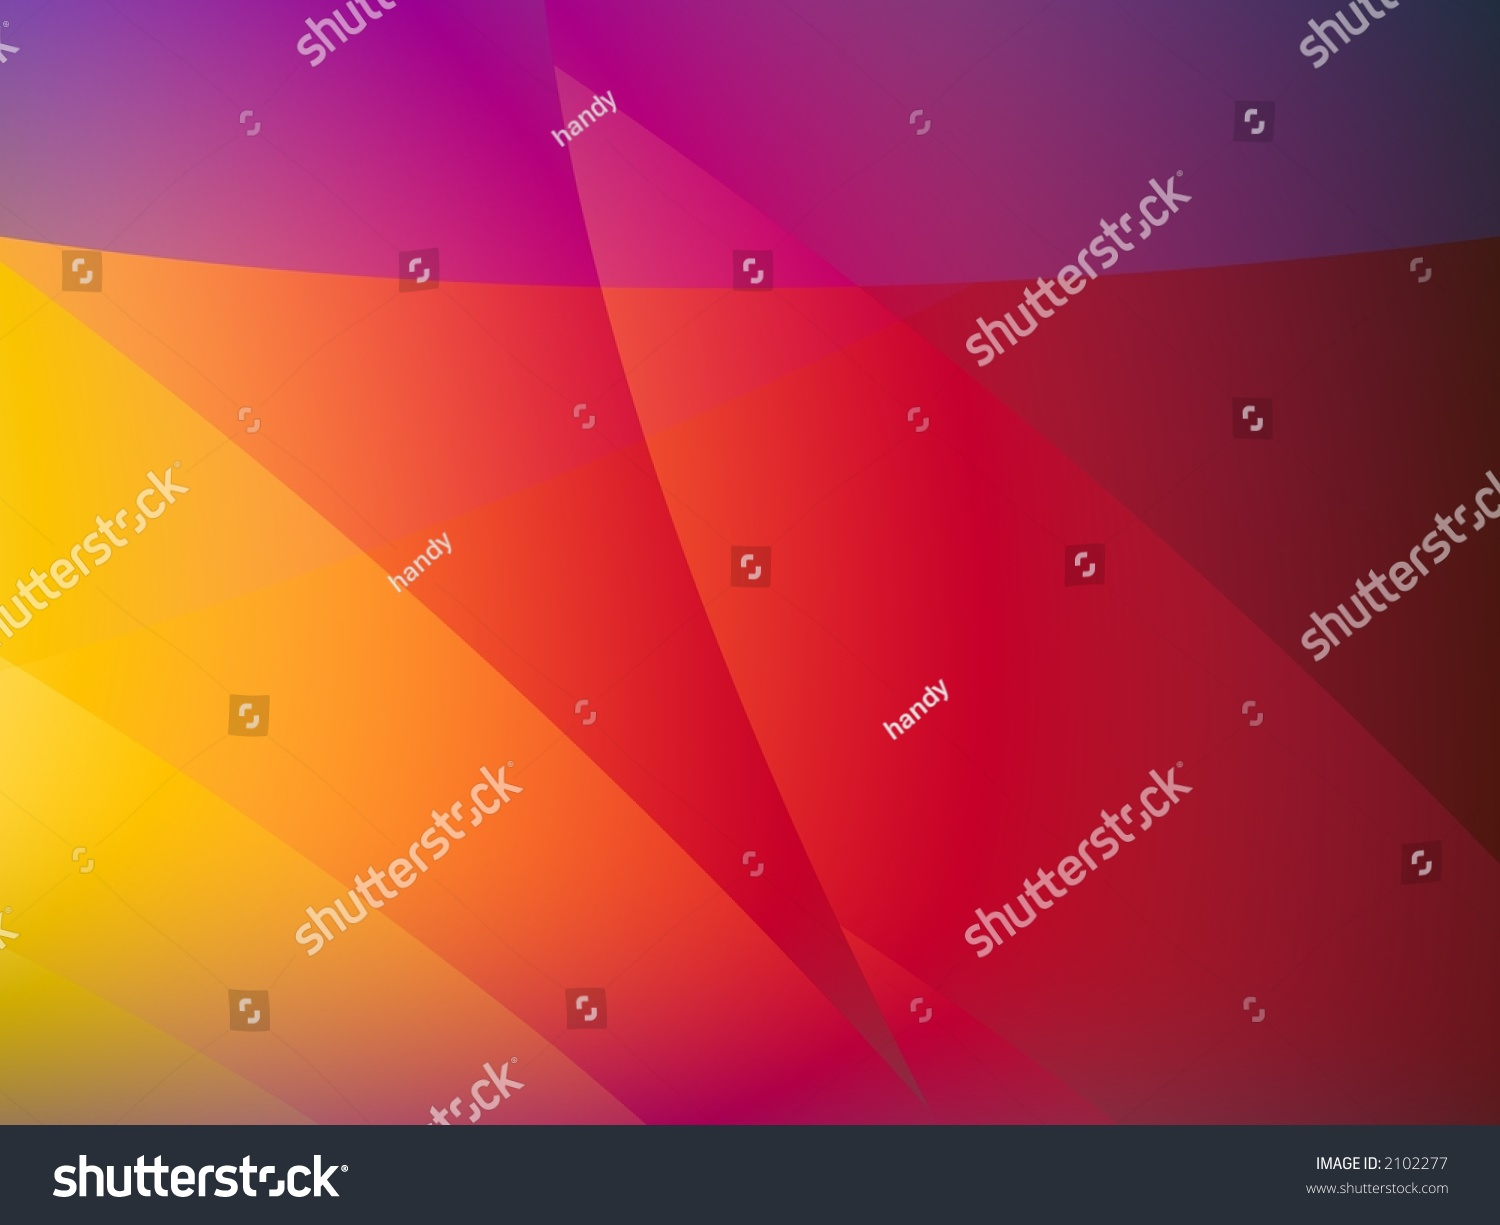 Rendering Psychotic Background Royalty  Stock Image 1500x1225